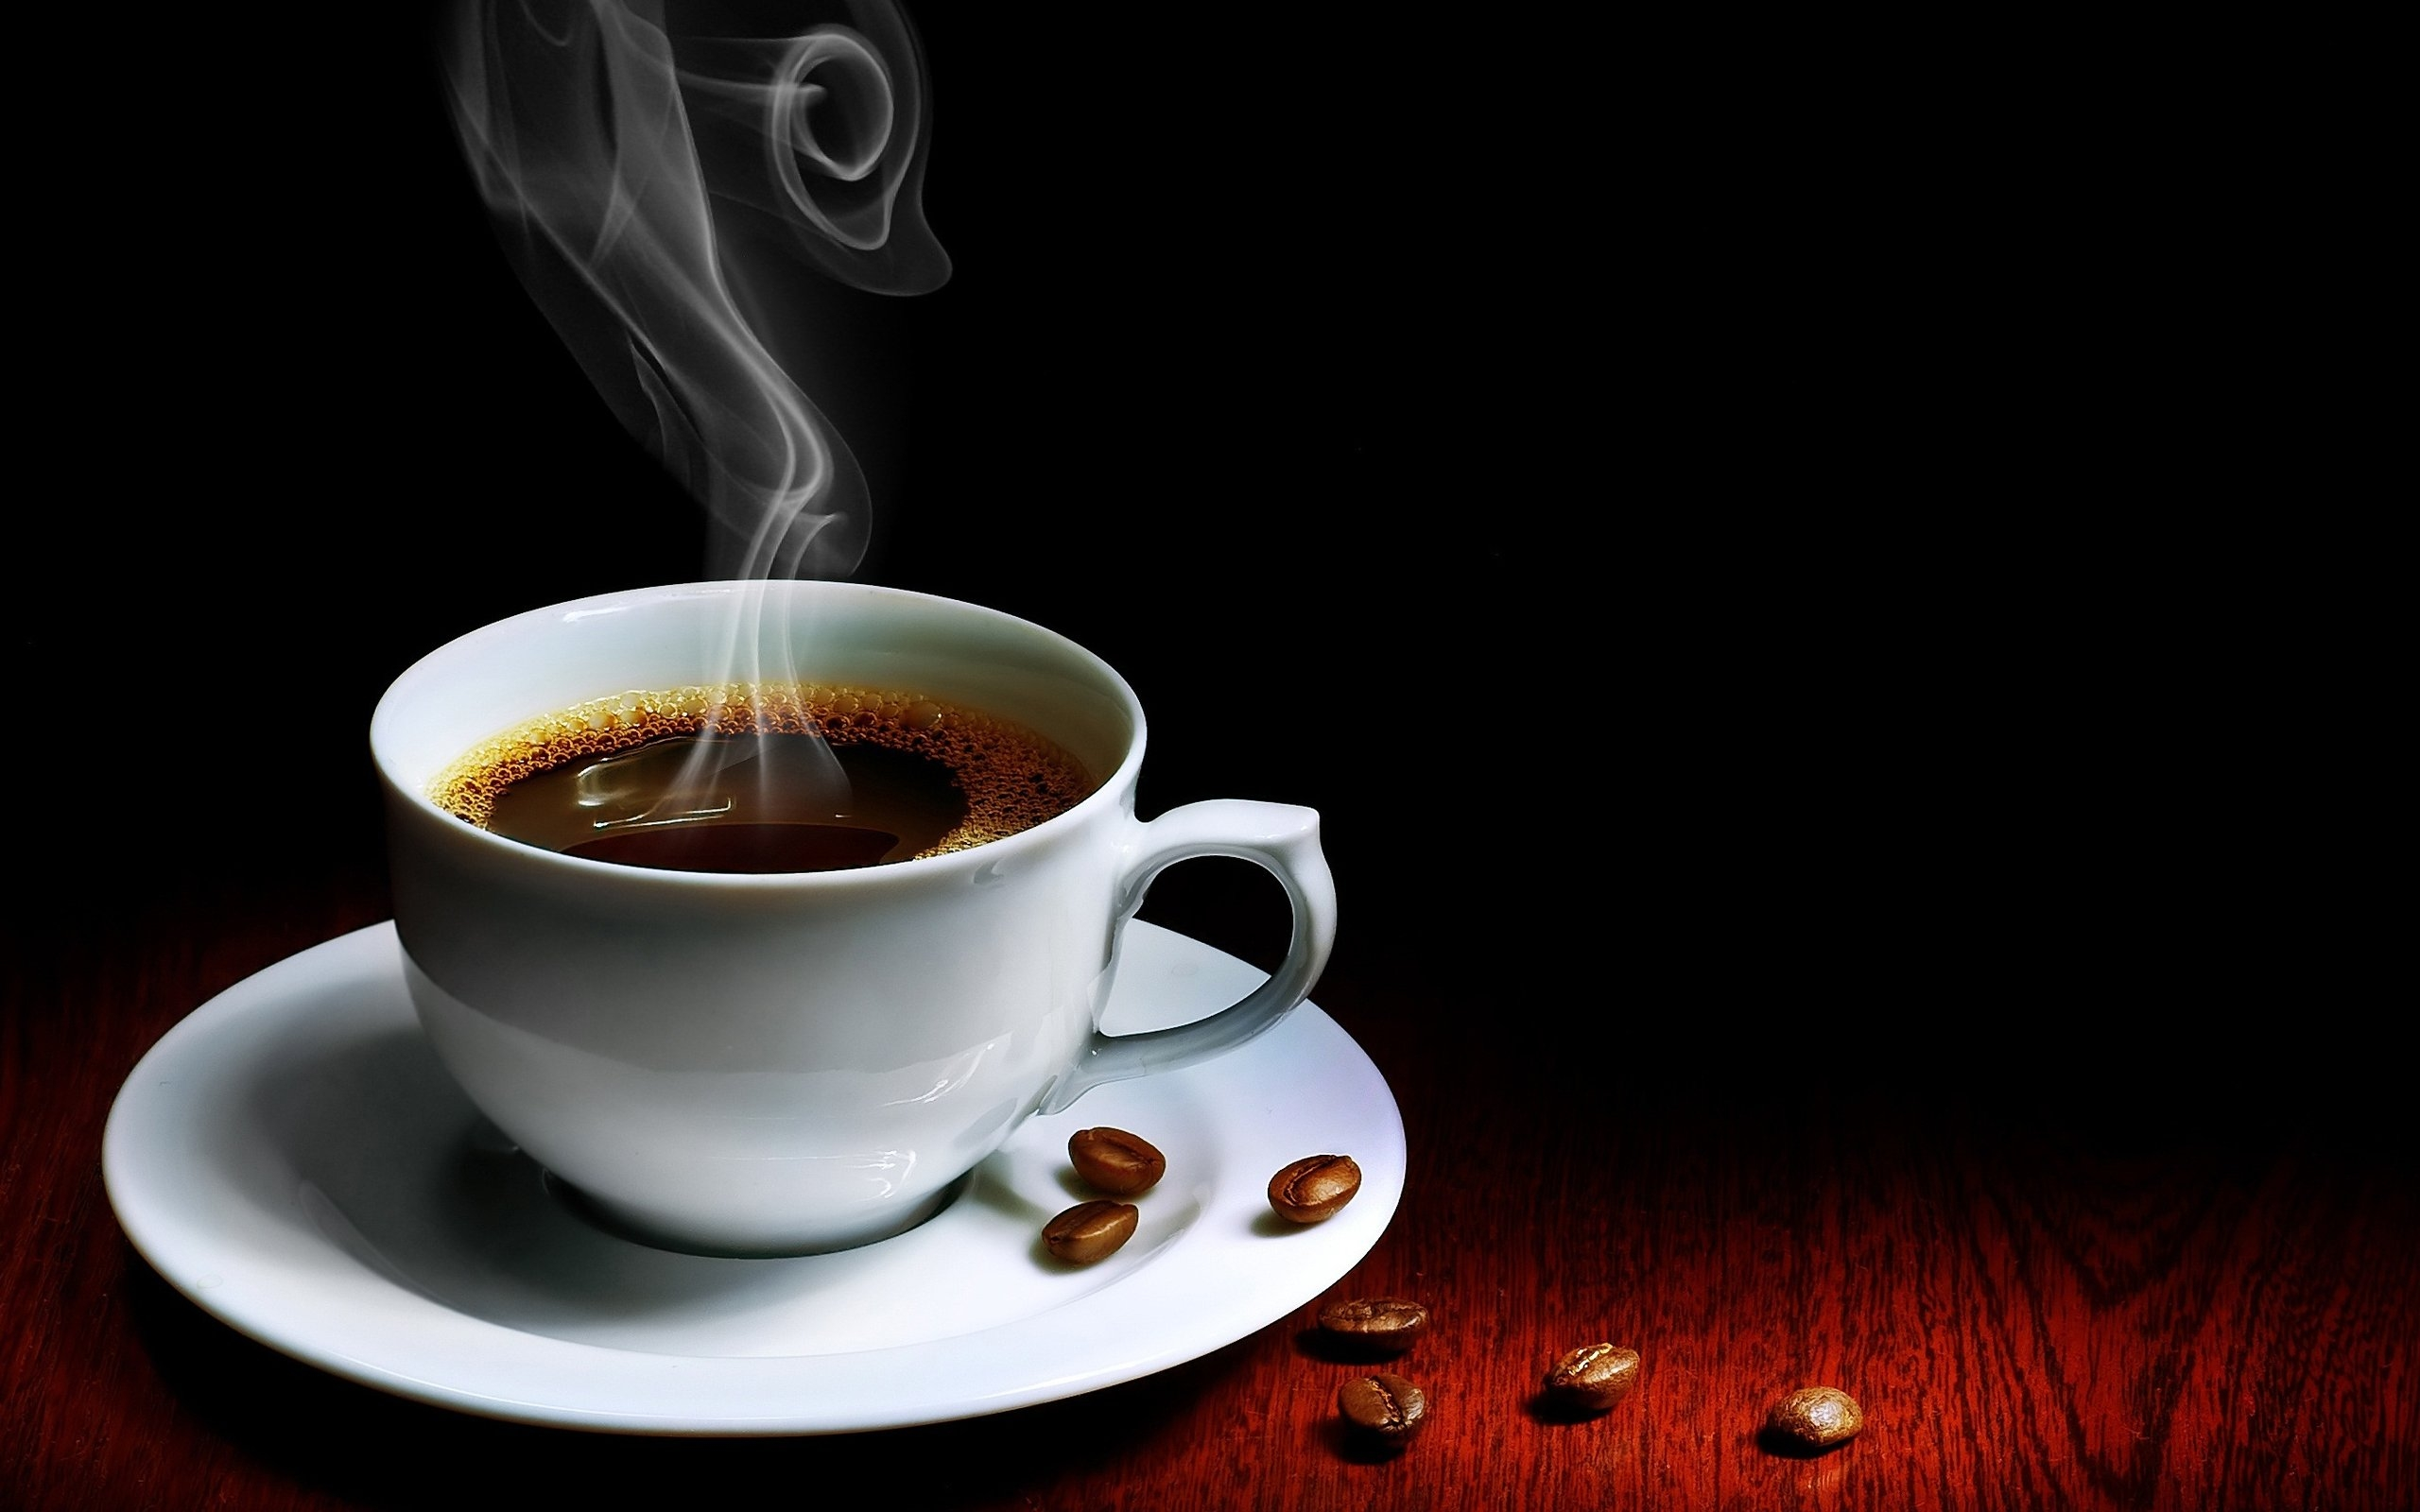 cup-of-coffee-wallpapers_24862_2560x16002.jpg?width=400